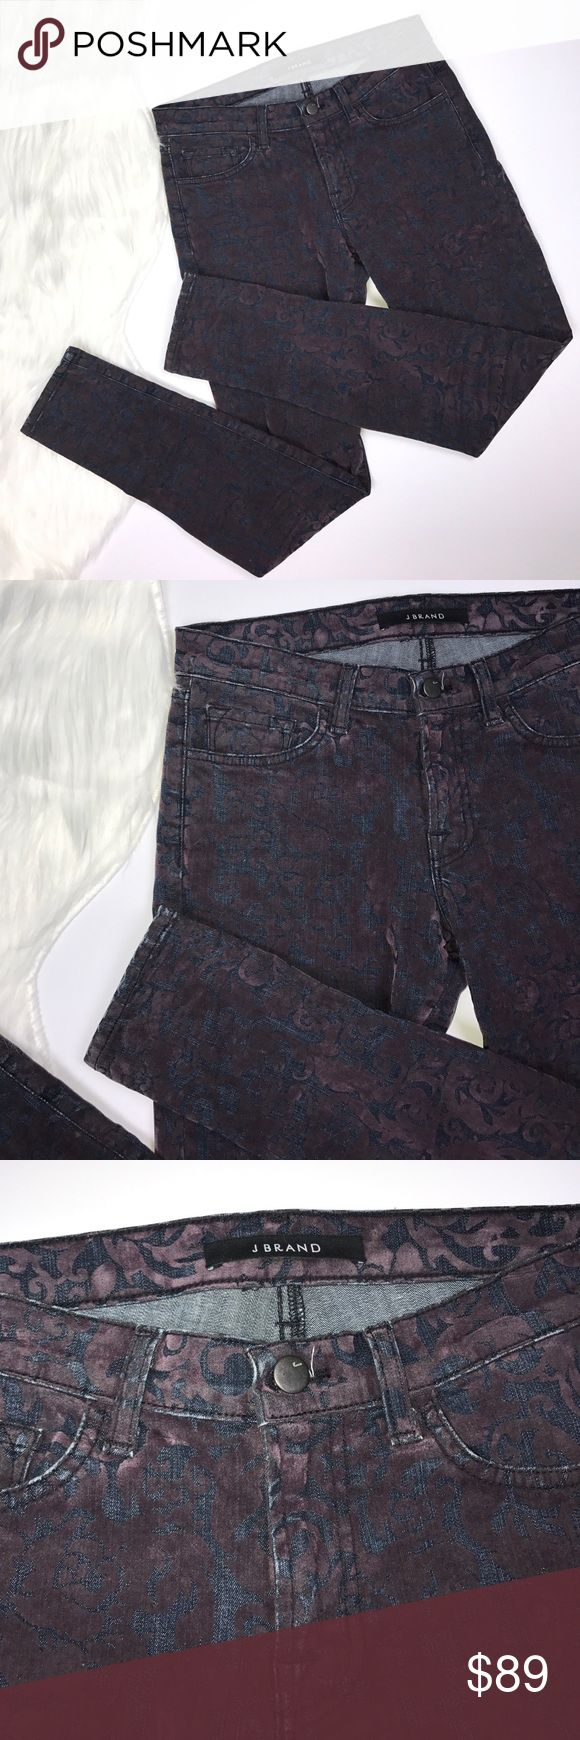 """J Brand Crushed Velvet Skinny Jeans. So gorgeous! In great condition. Crushed velvet in purple and blue jean material. Color is """"purple broca"""". Size 27. Skinny leg. J Brand for Barney's New York. J Brand Jeans Skinny"""